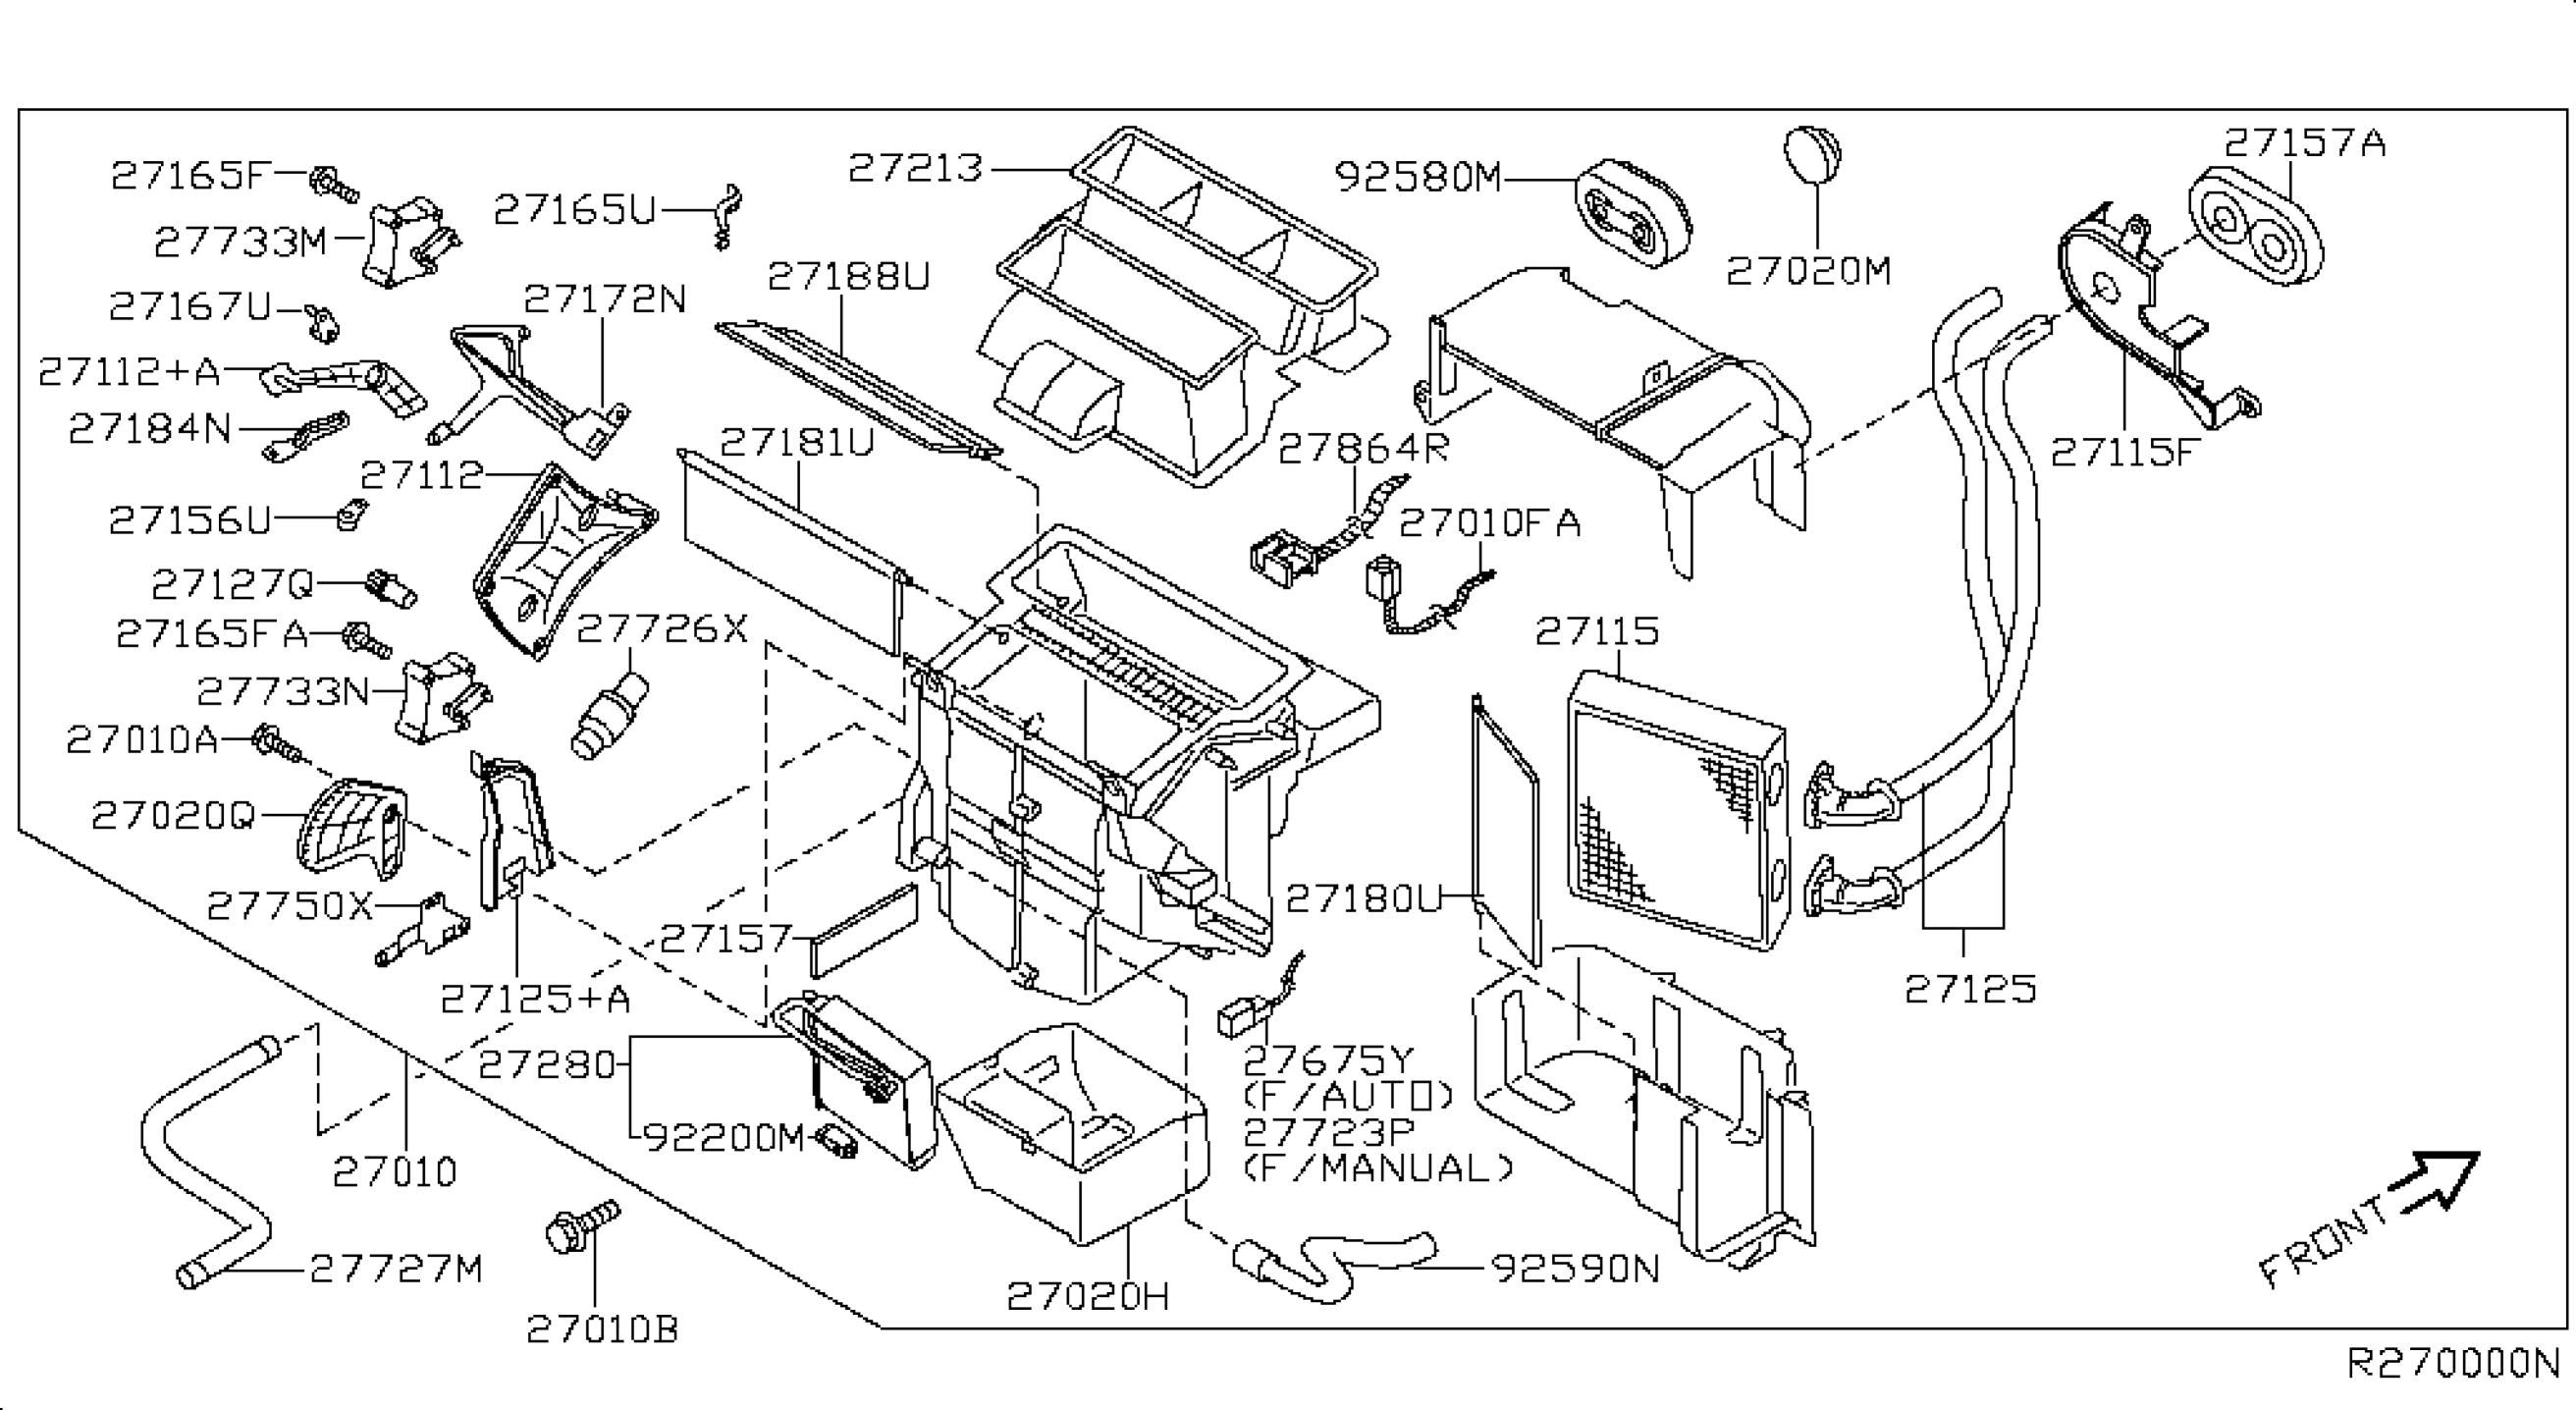 Nissan Sentra Parts Diagram